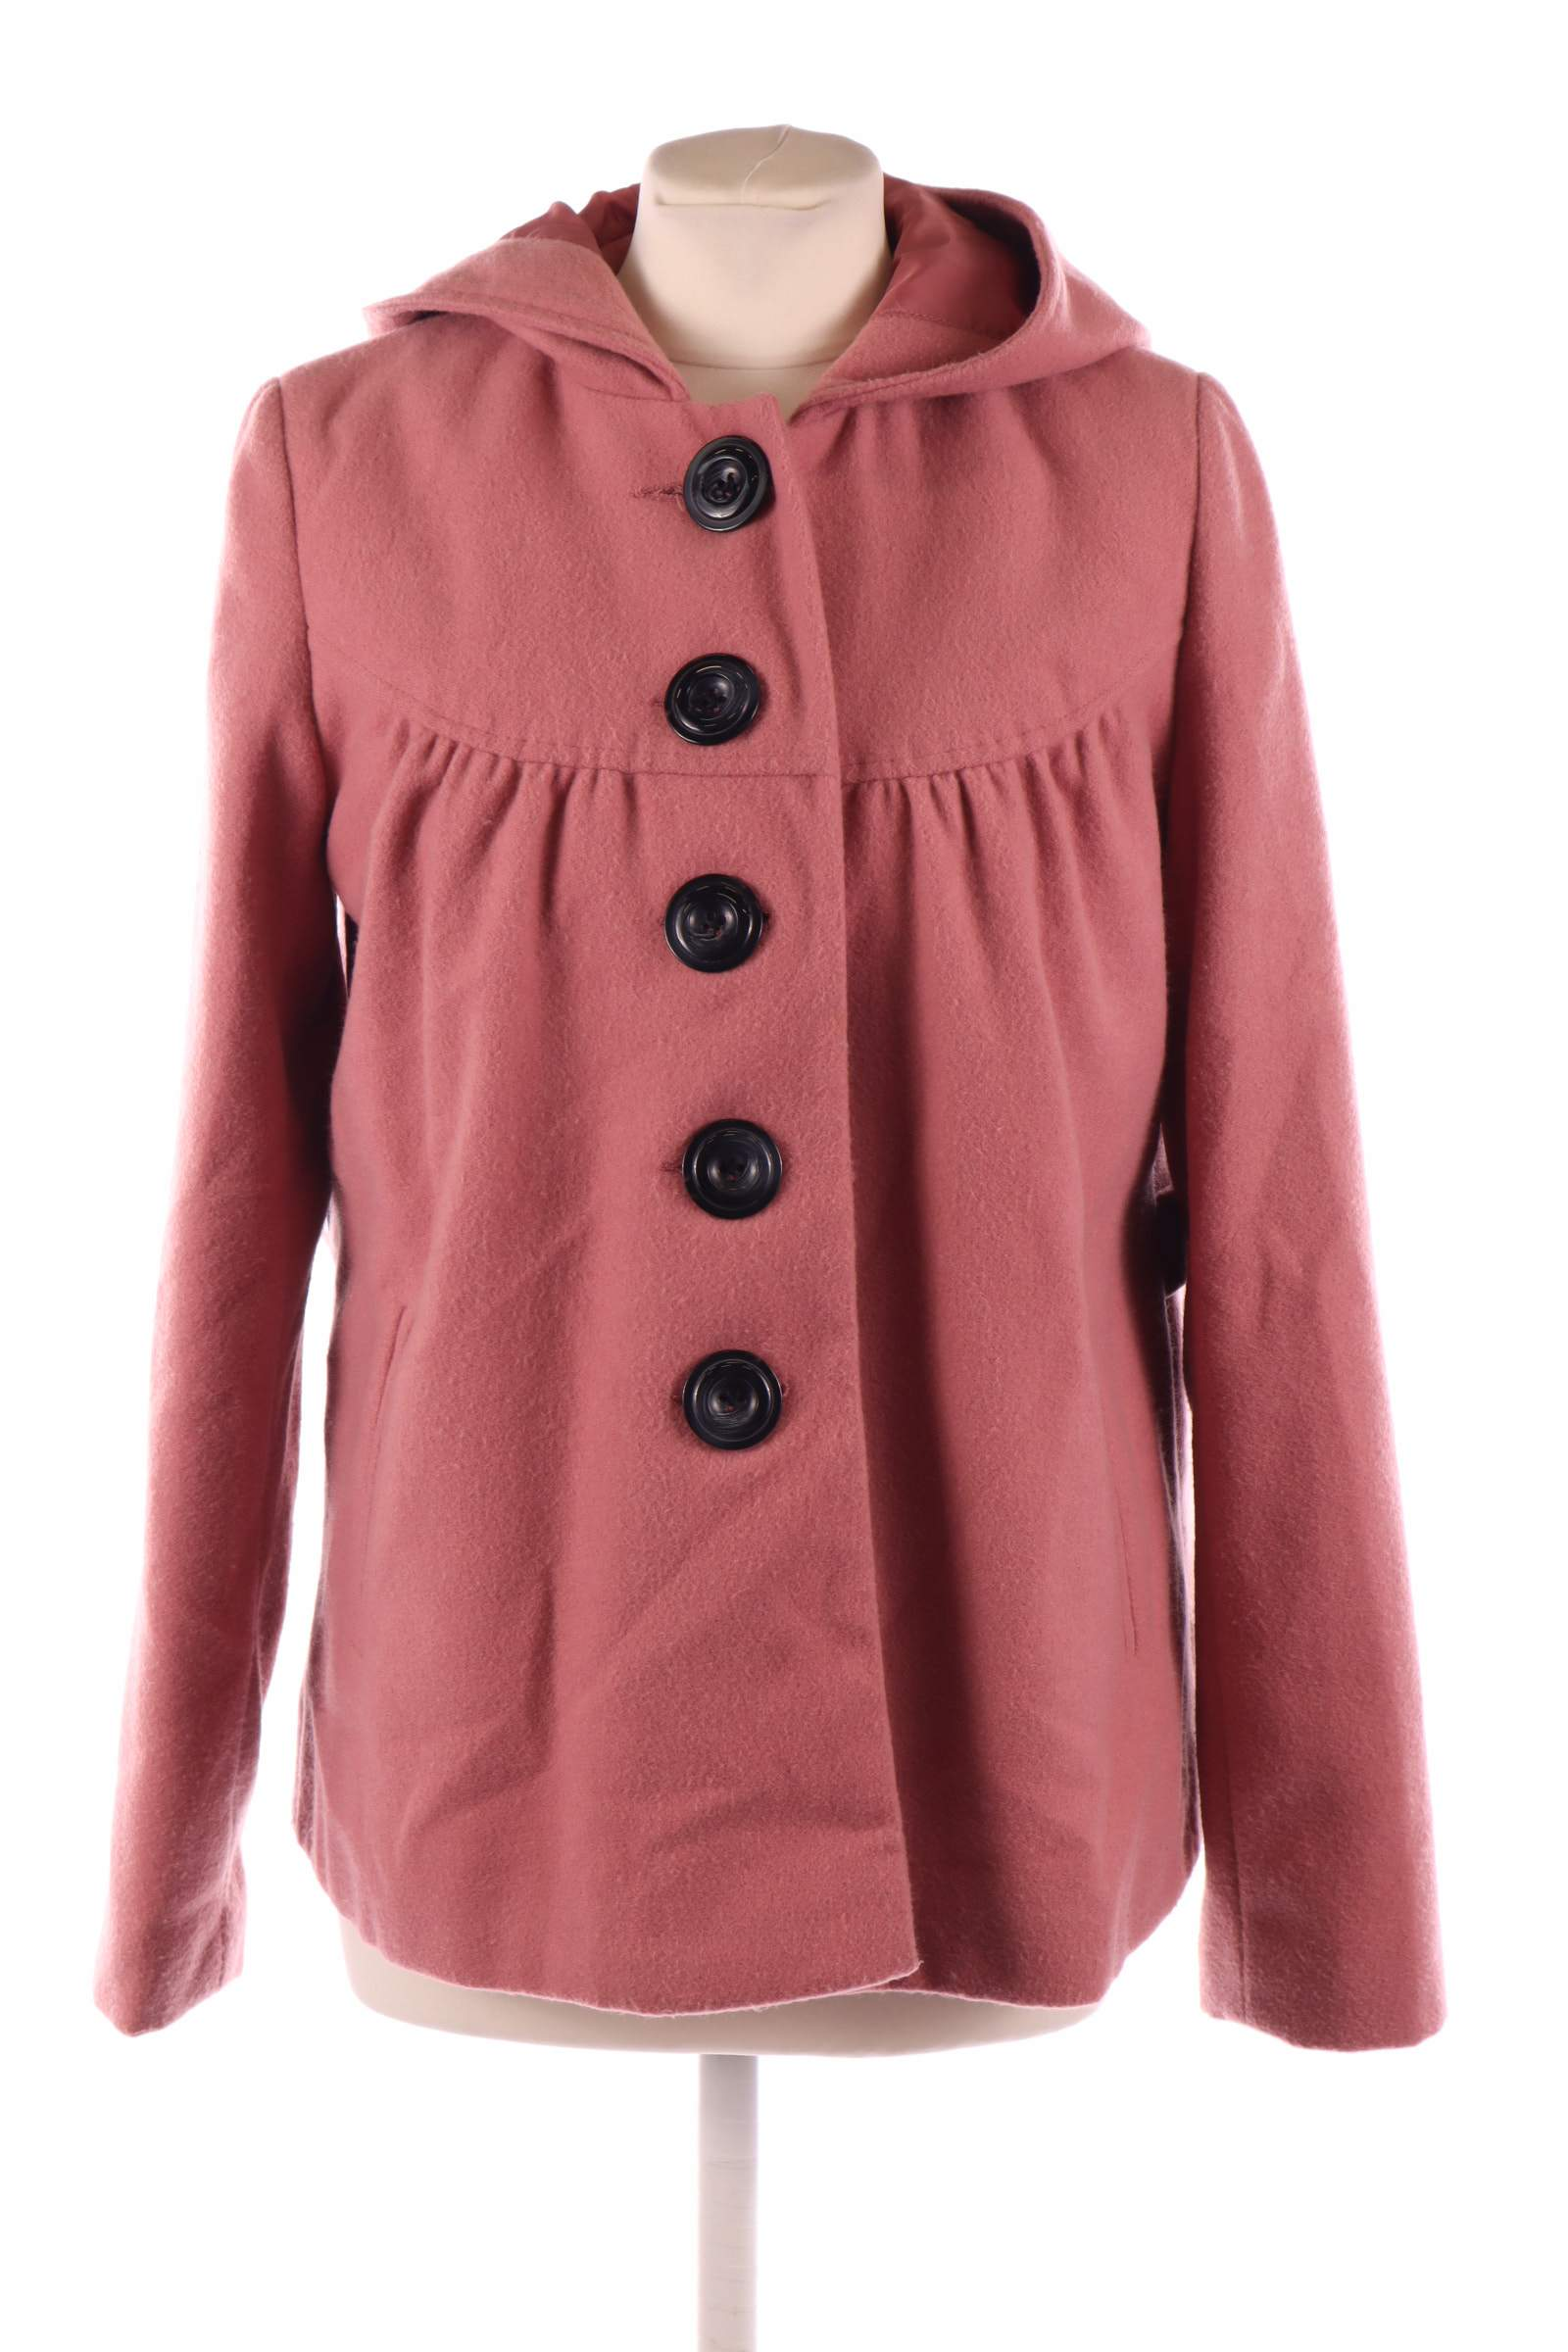 George Pink Coat - upty.store